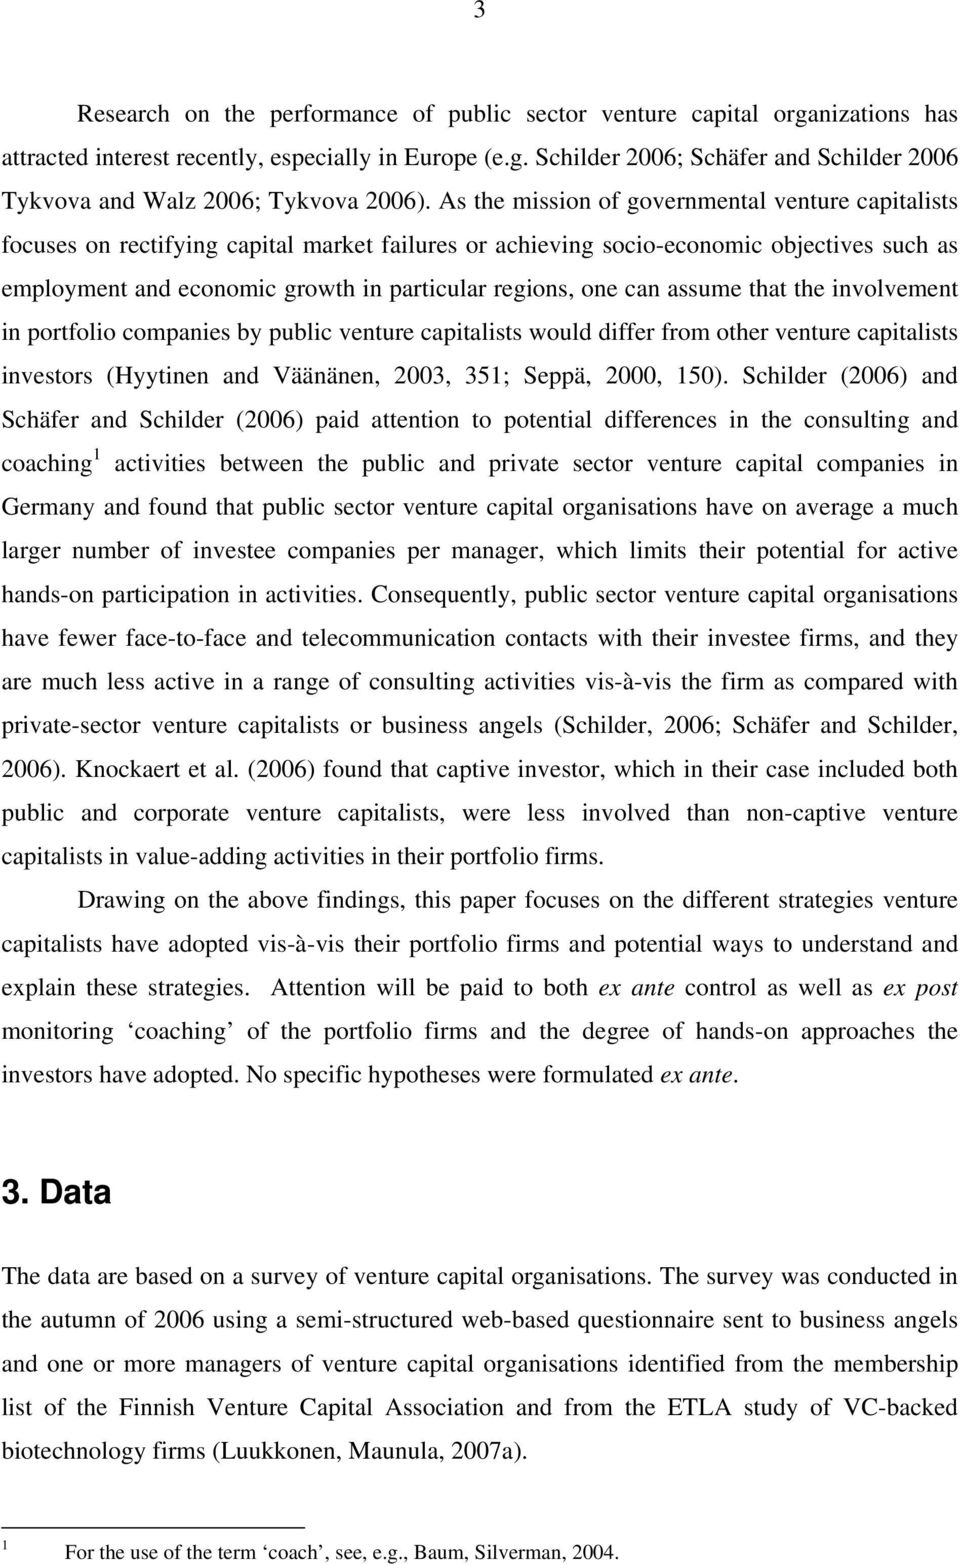 one can assume that the involvement in portfolio companies by public venture capitalists would differ from other venture capitalists investors (Hyytinen and Väänänen, 2003, 351; Seppä, 2000, 150).